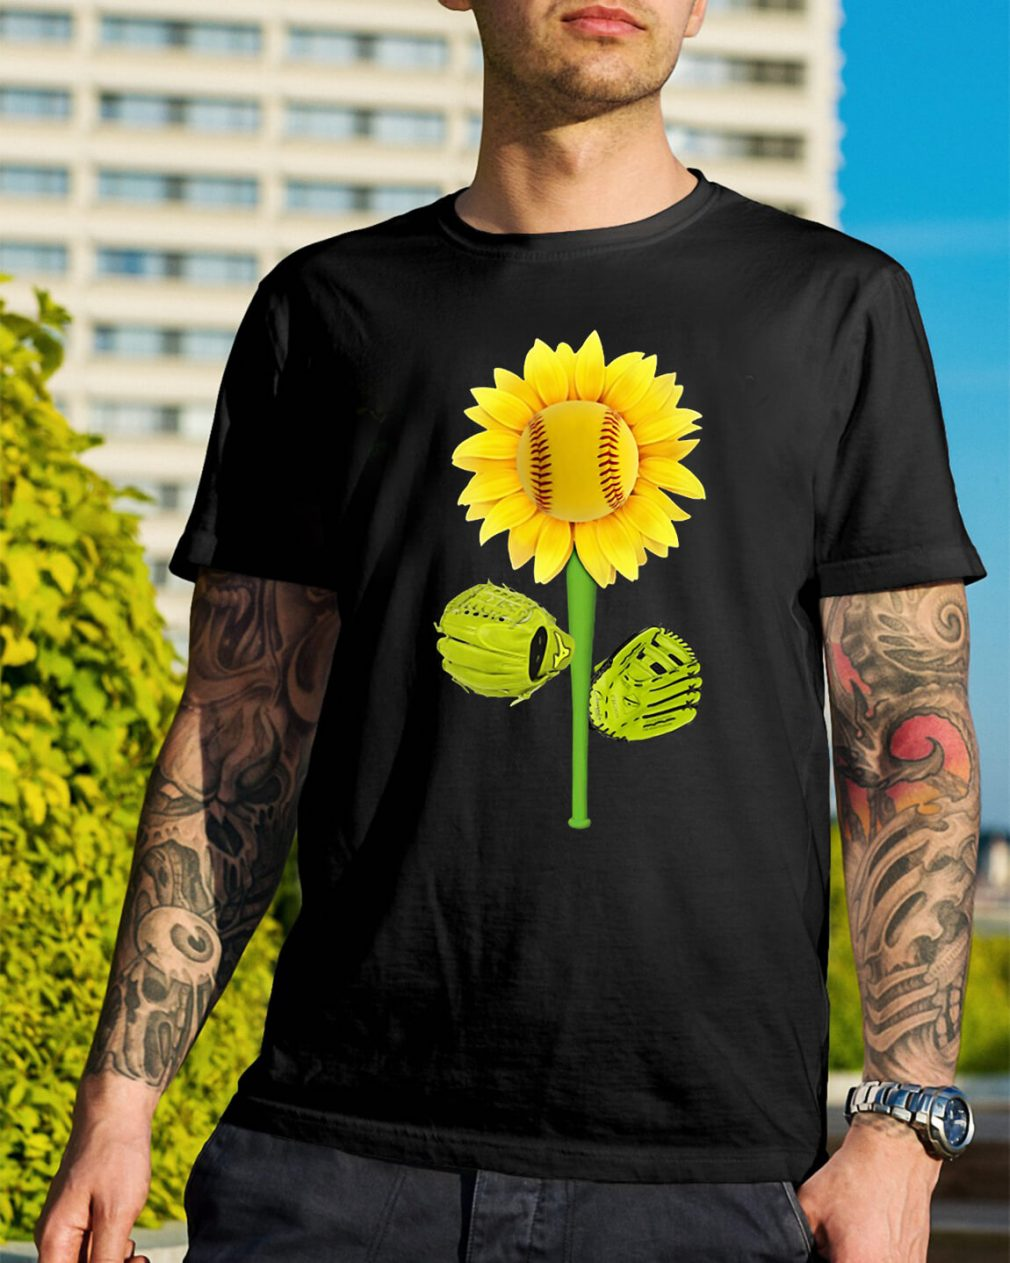 Sunflower baseball shirt